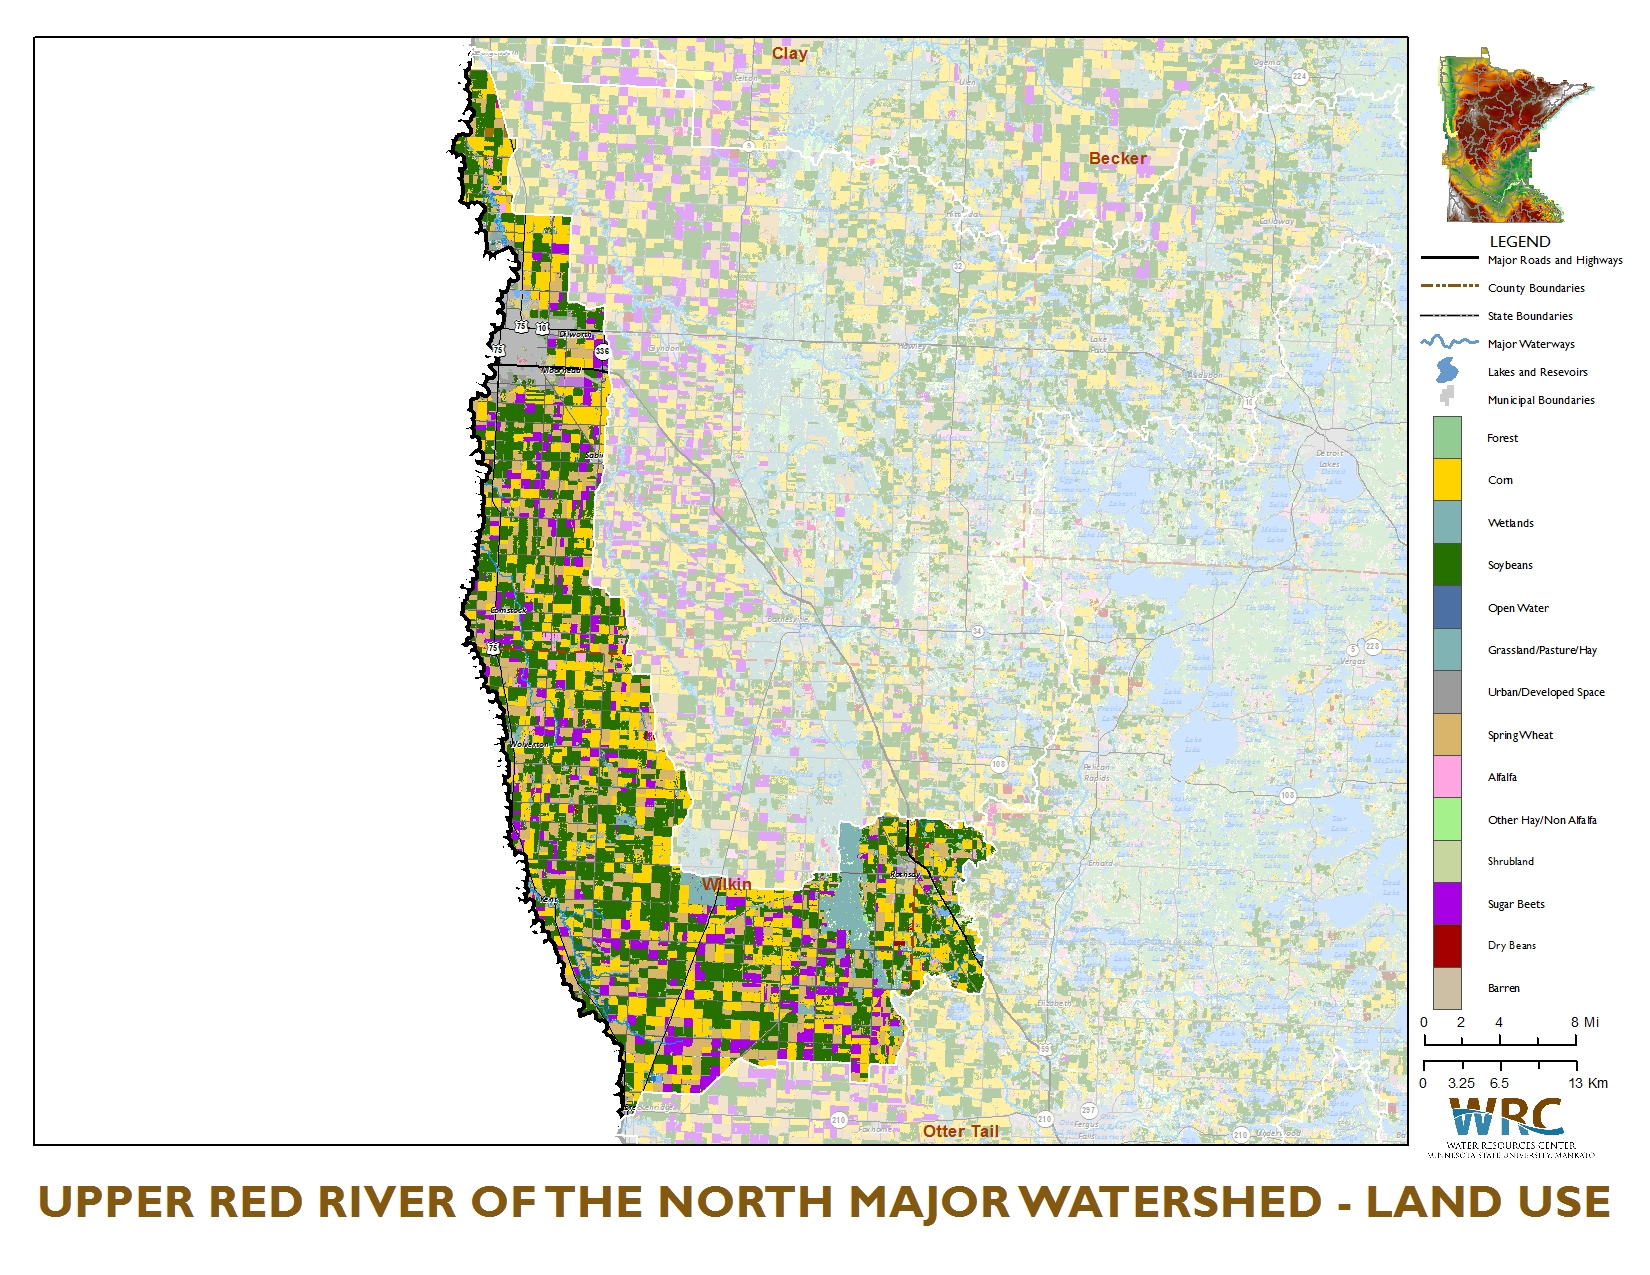 ecoregions in minnesota Lakes in the western corn belt plains ecoregion (southern minnesota) tend to have higher phosphorus and algae concentrations due to the fertile black soil, agriculture and the minnesota river valley.